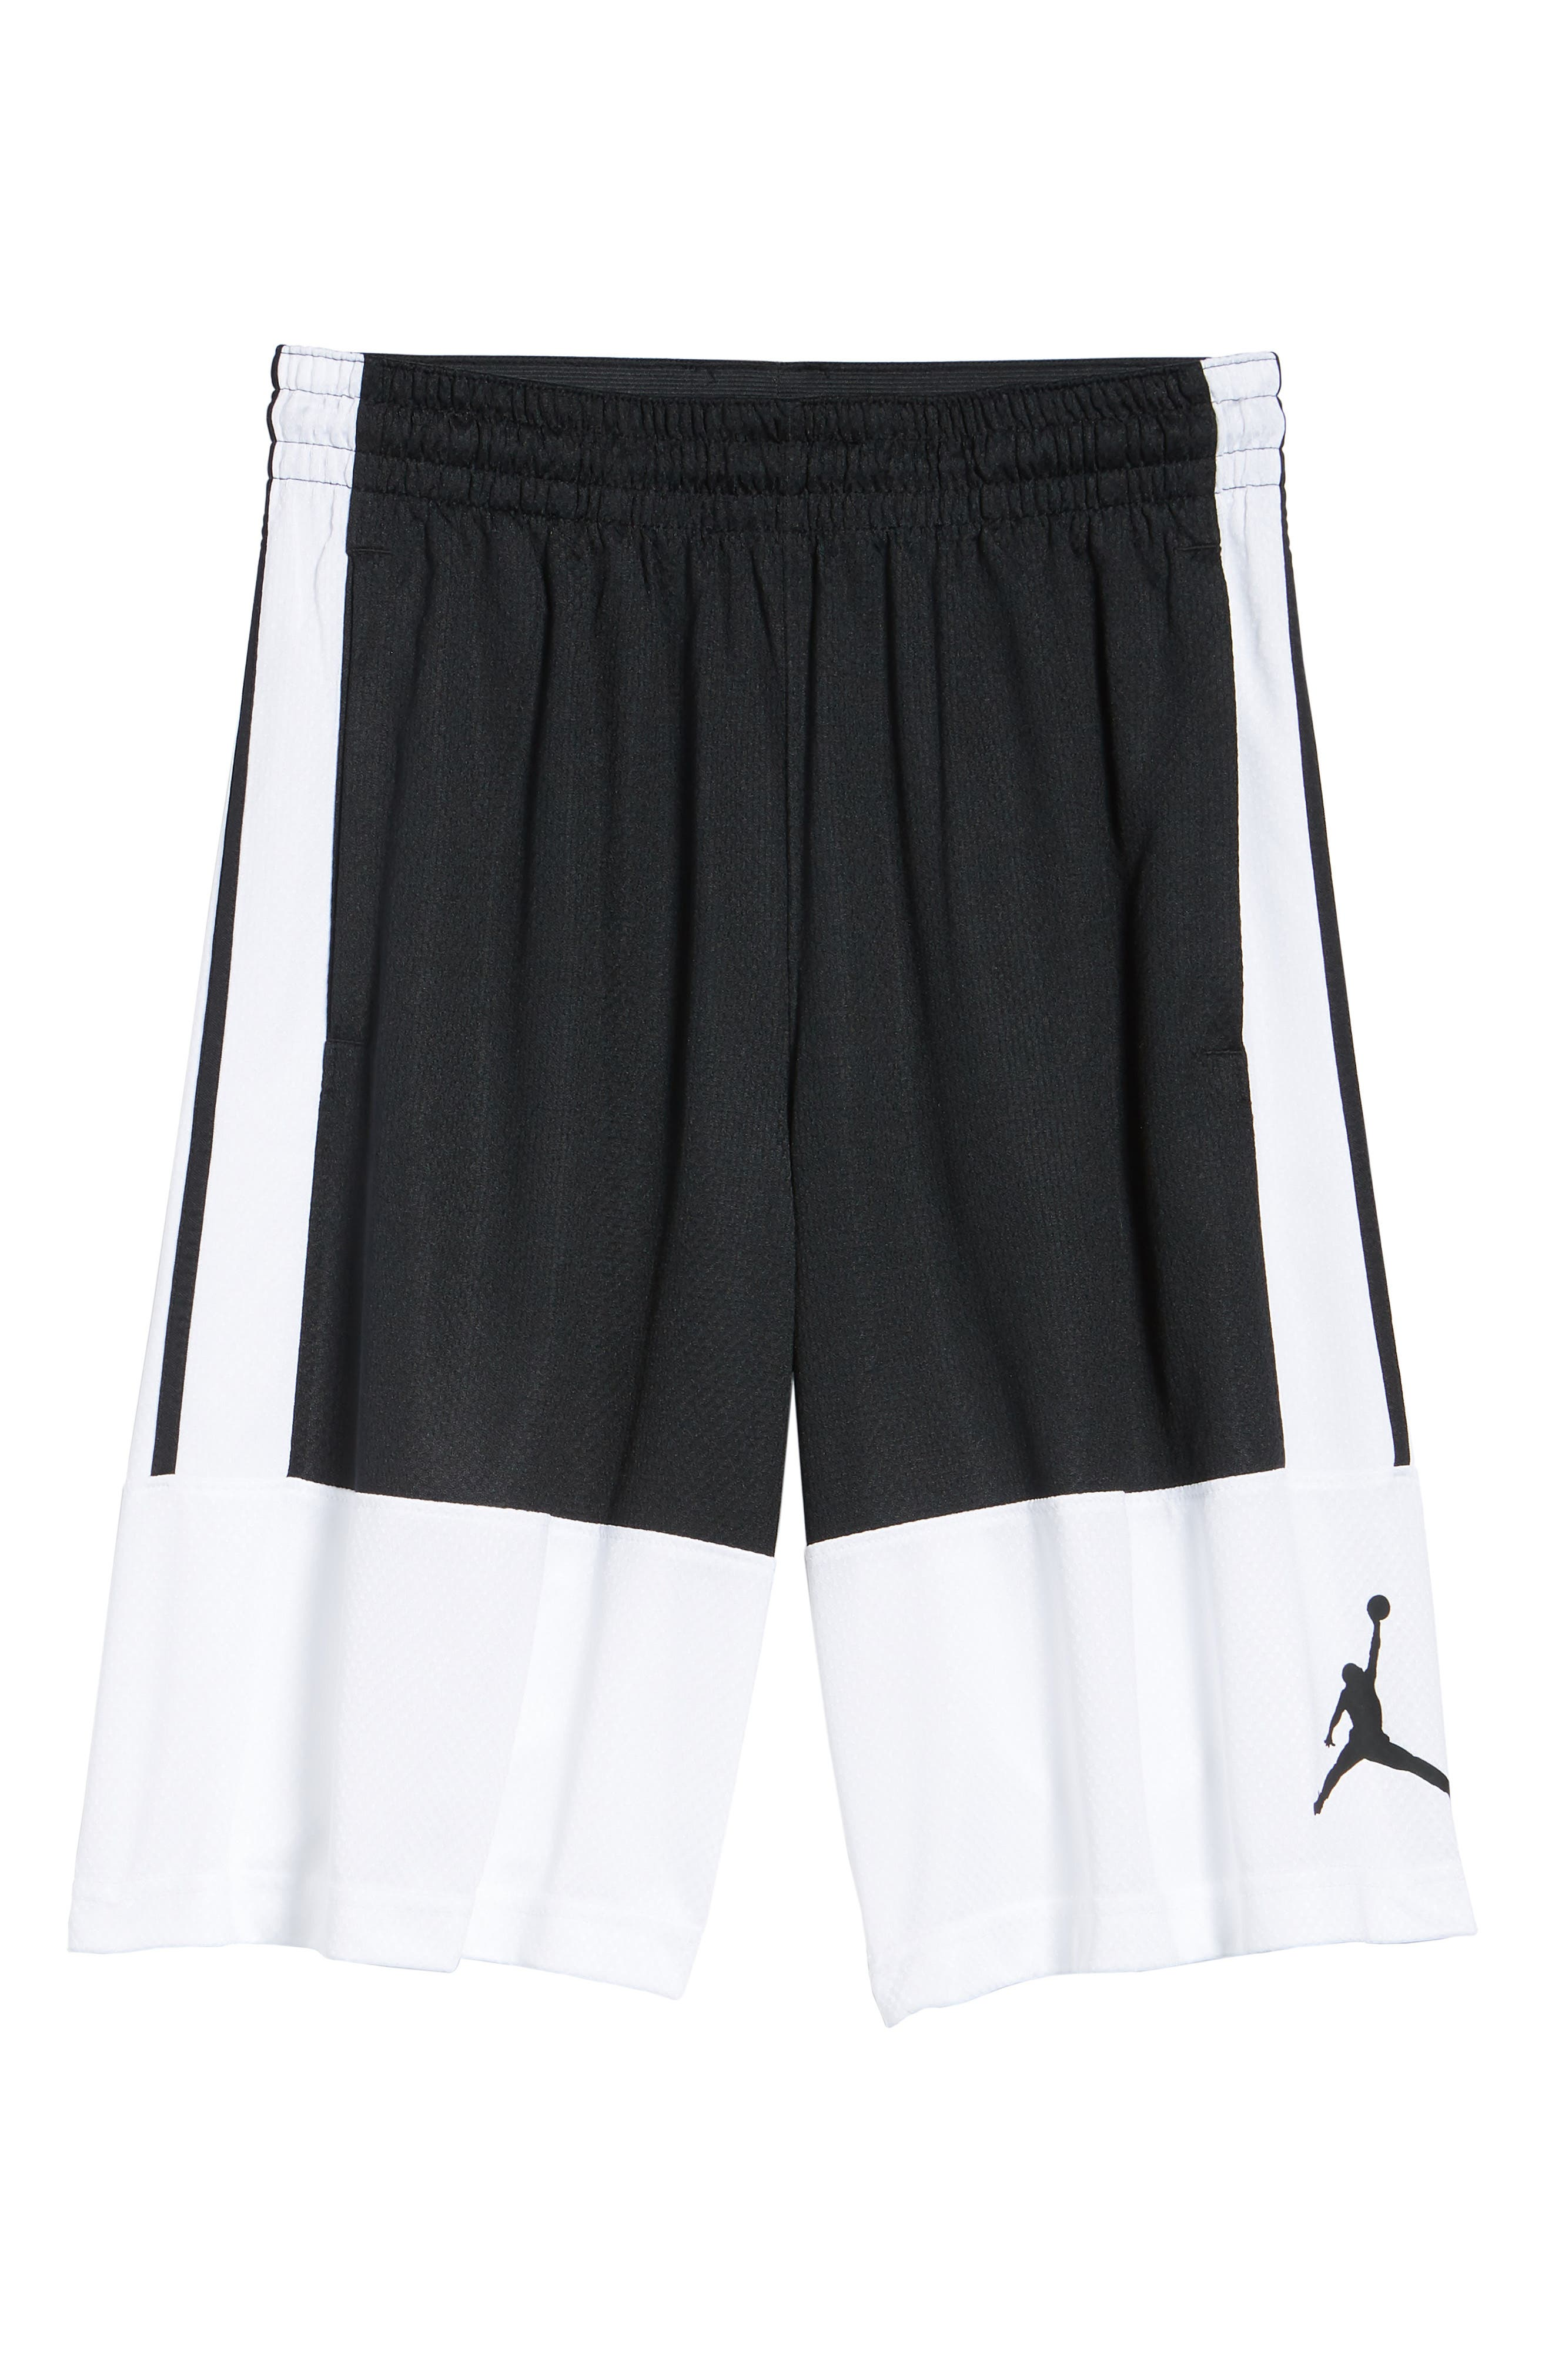 Rise Shorts,                             Alternate thumbnail 6, color,                             WHITE/ BLACK/ BLACK